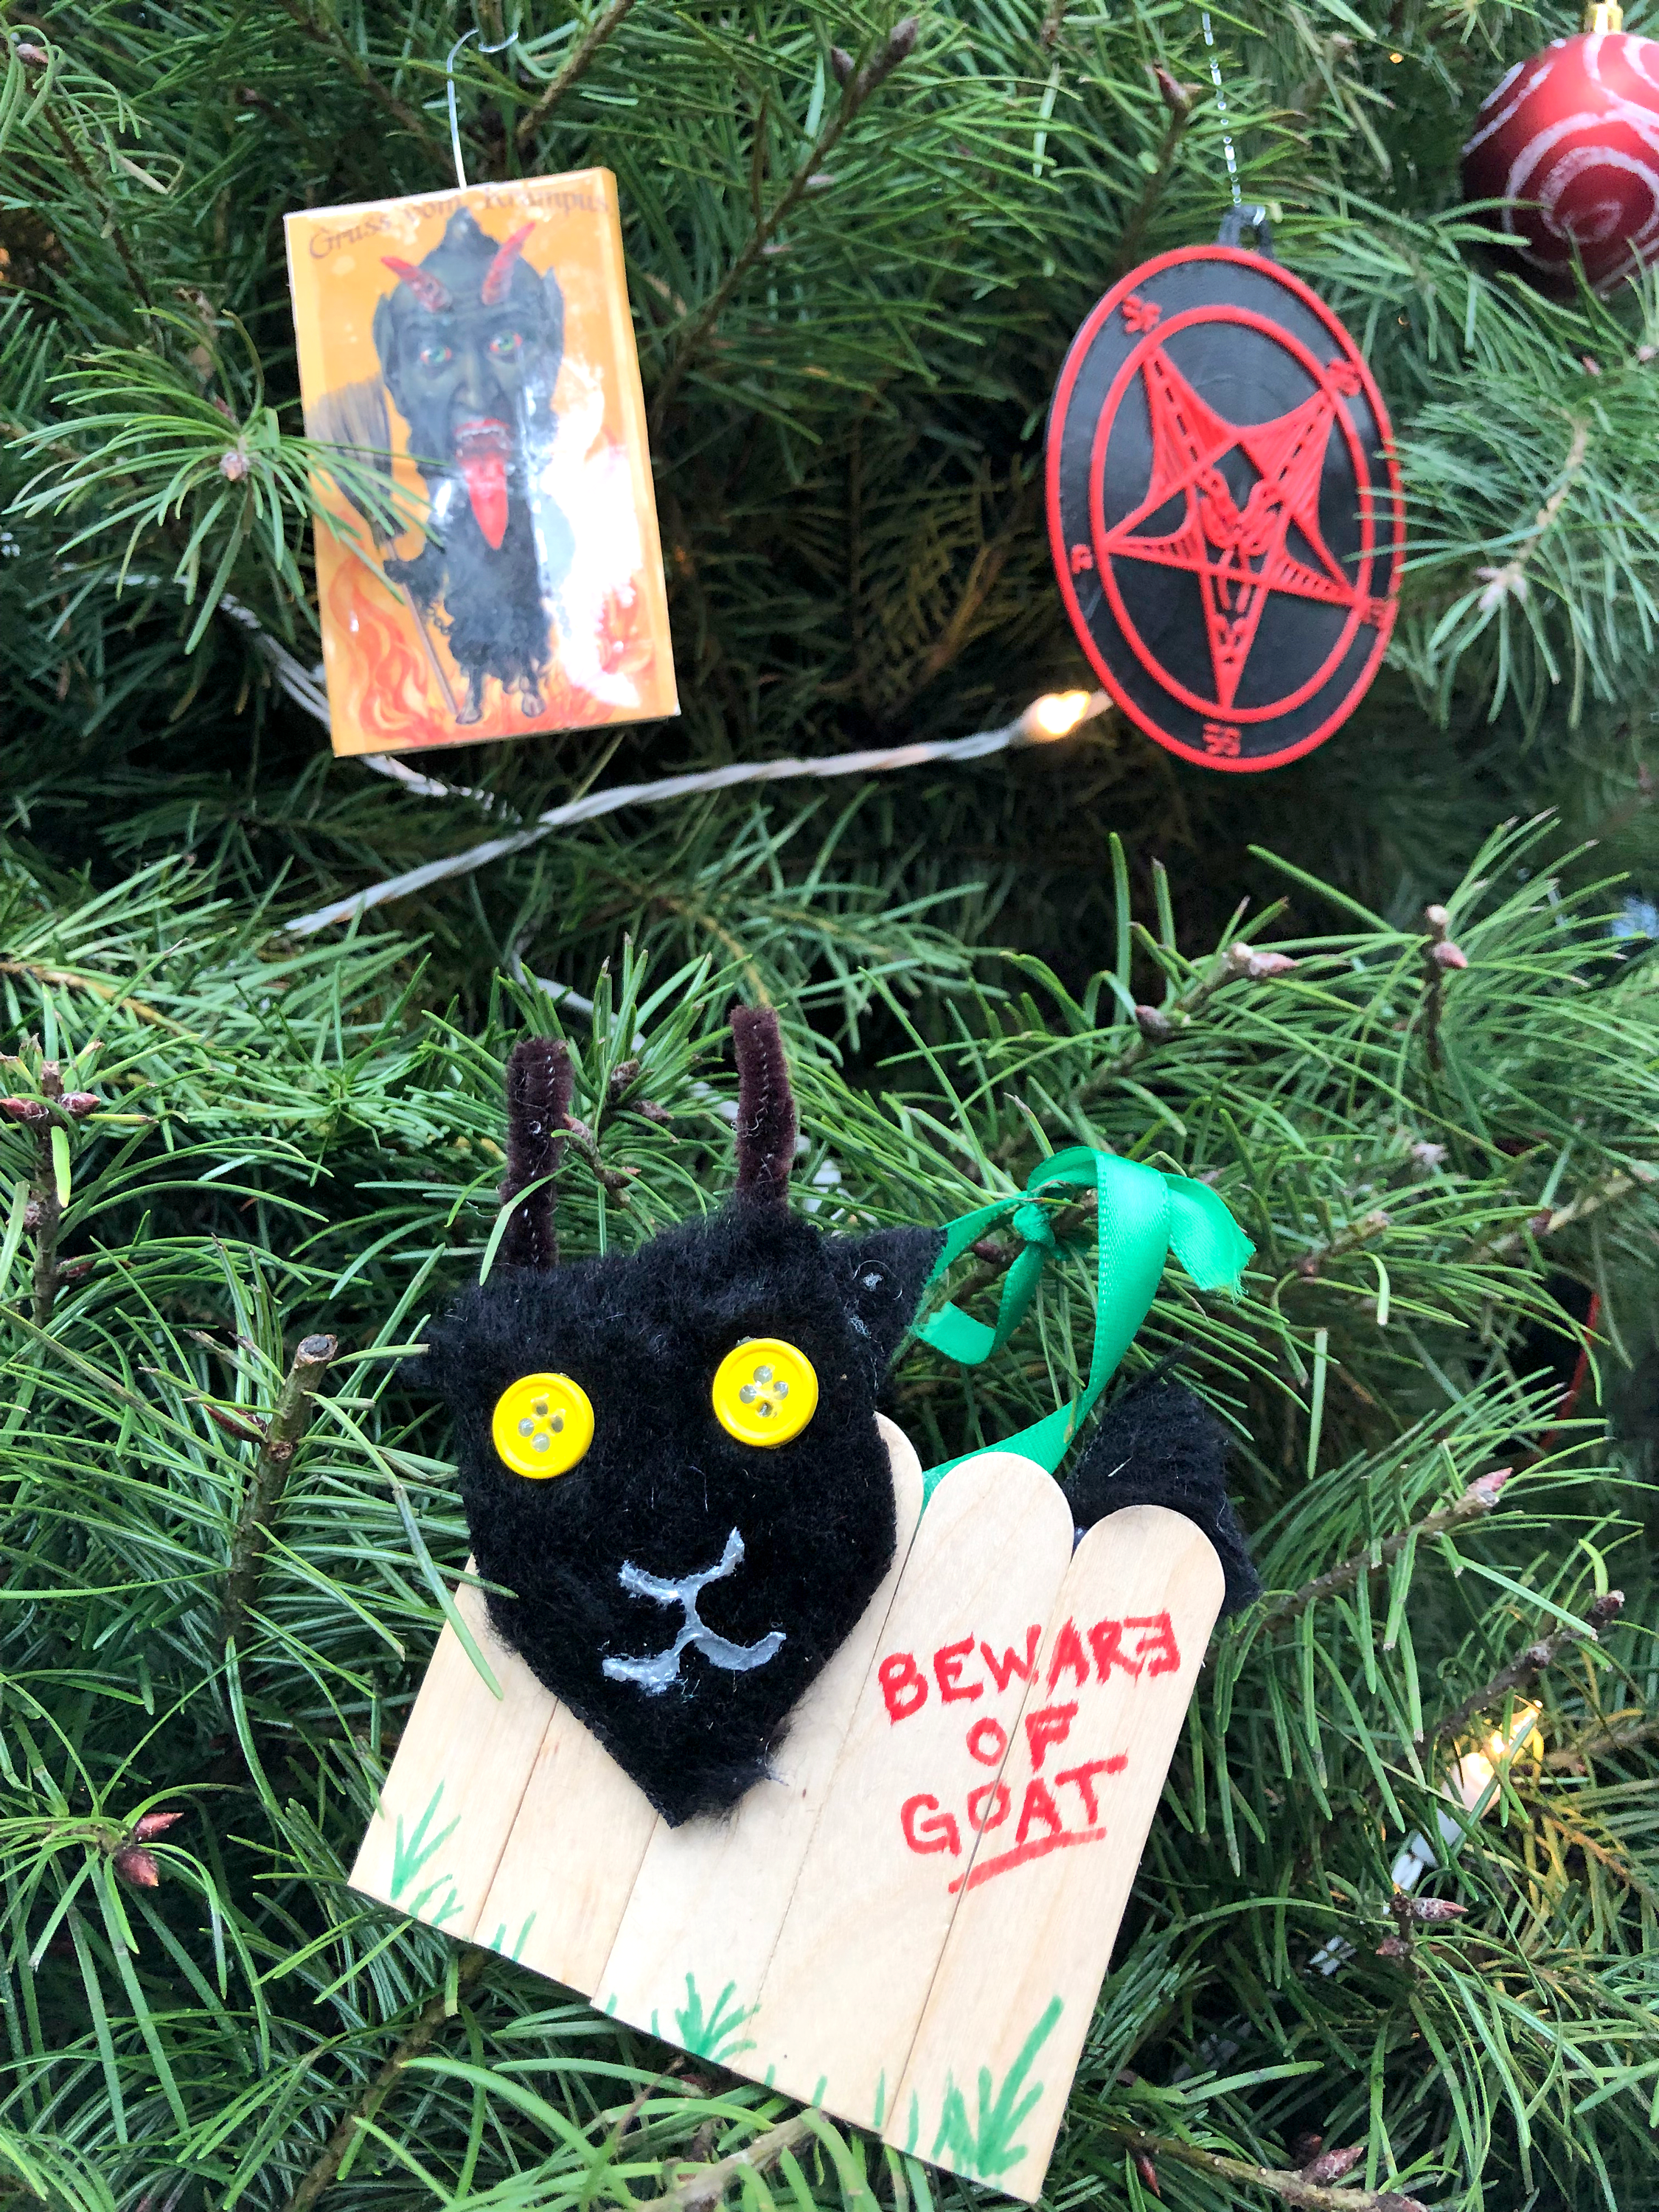 Satanic Bay Area's statement on the theft of holiday